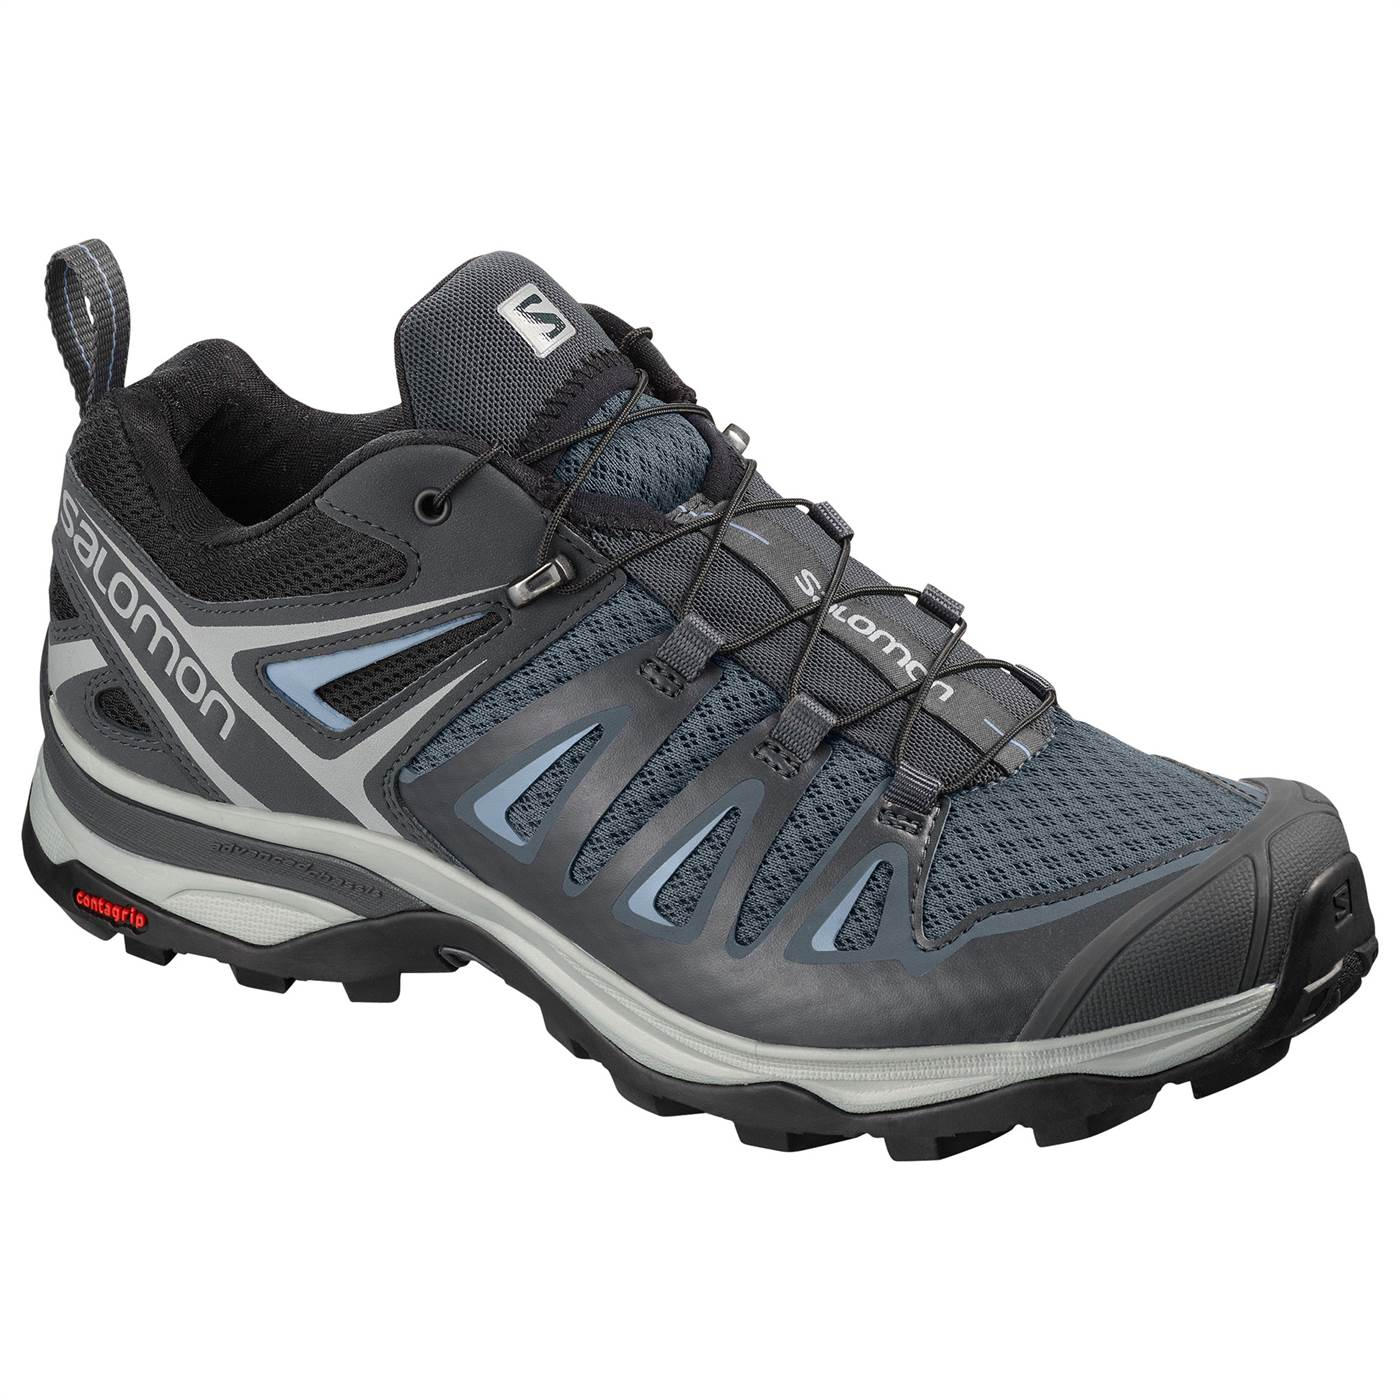 X Ultra 3 Shoe - Women's